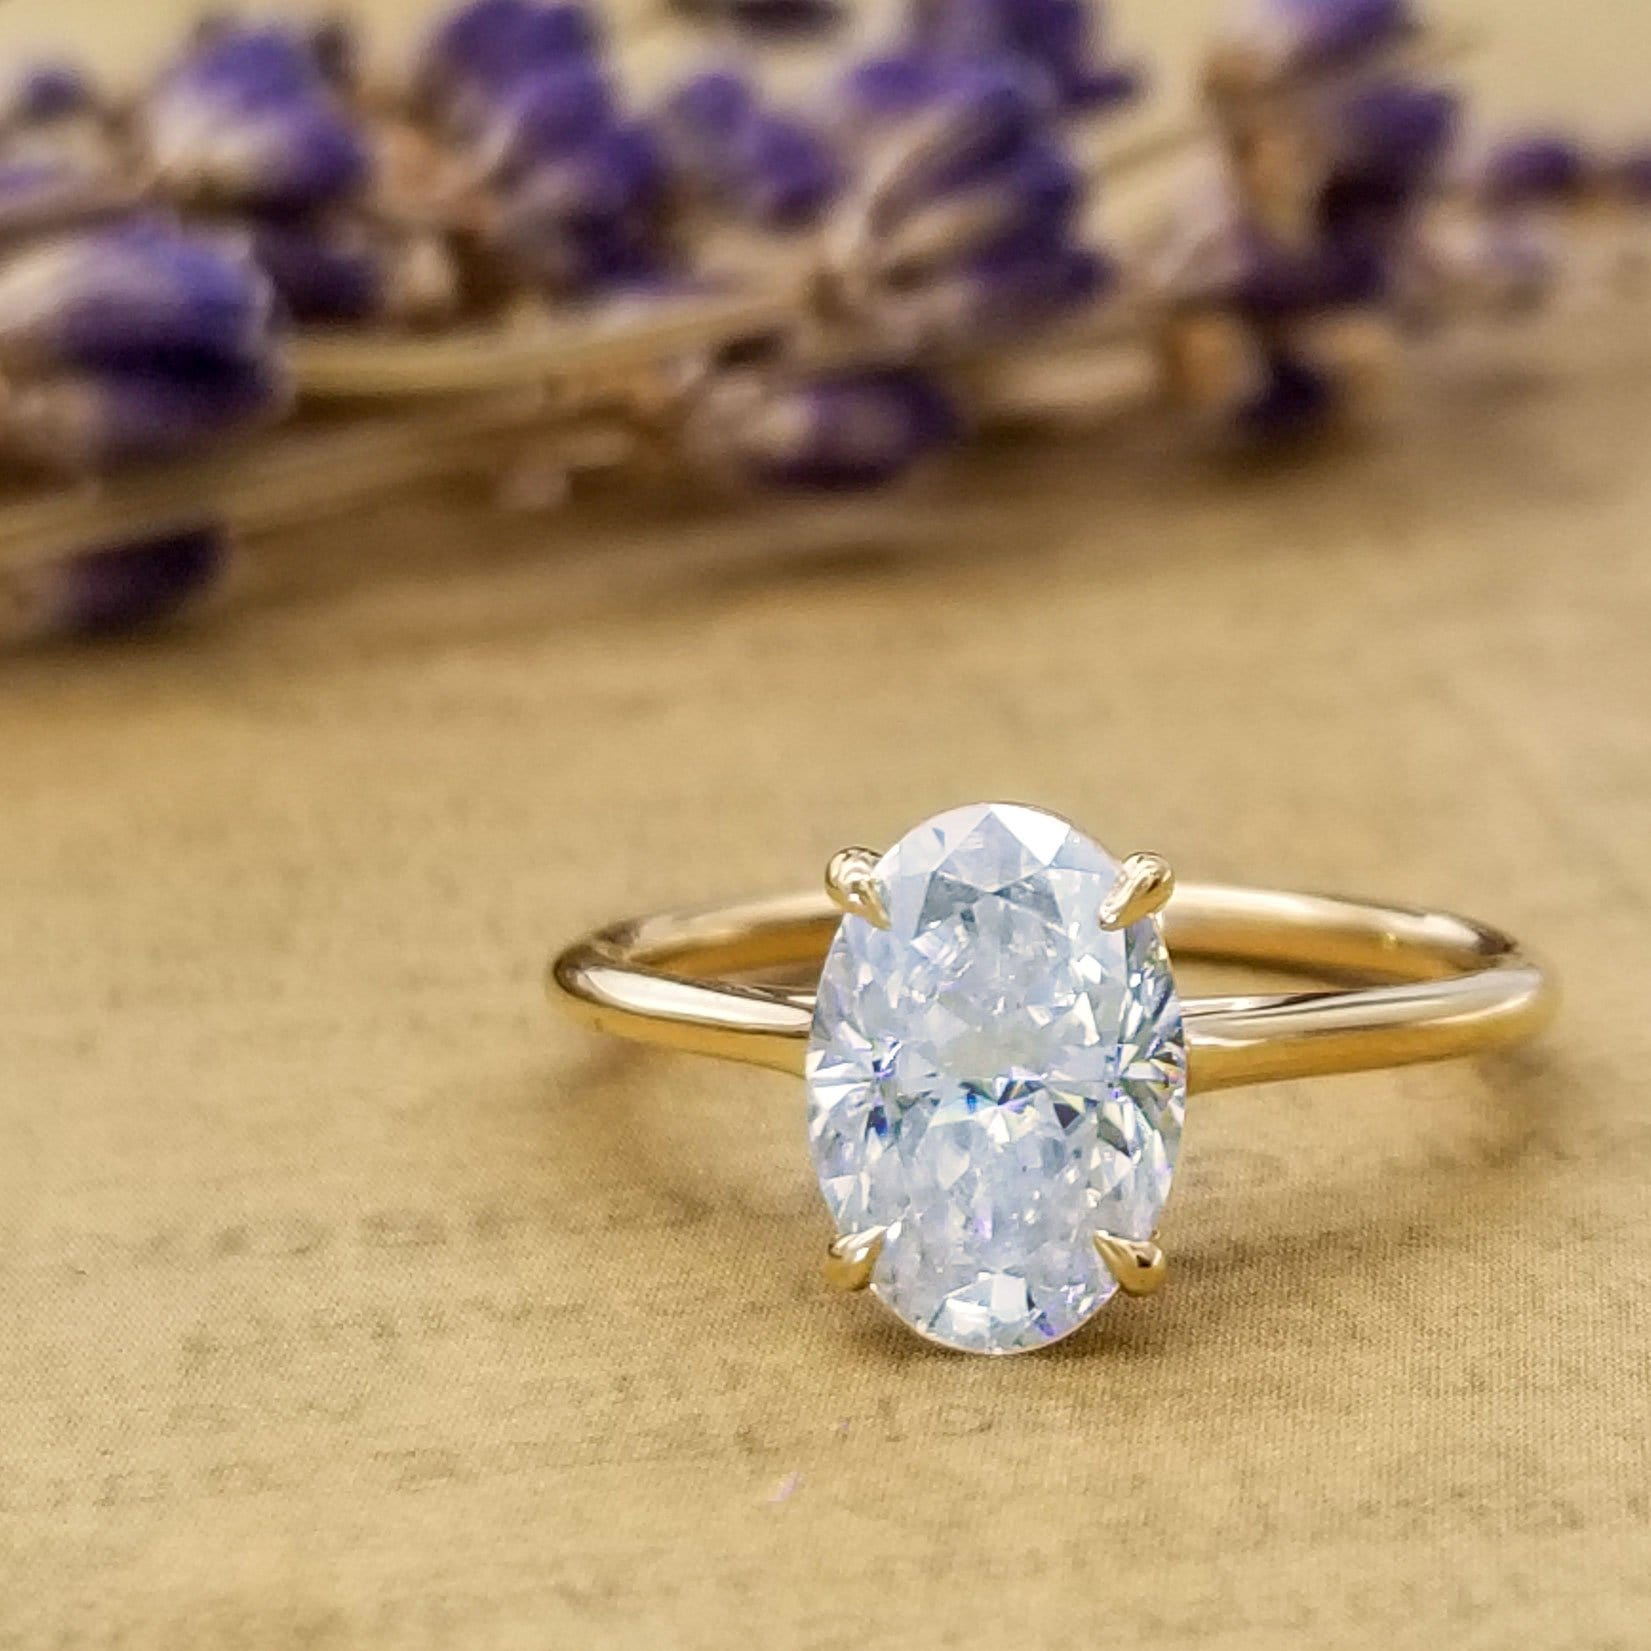 Thin Solitaire Engagement Ring 1.5mm Wide